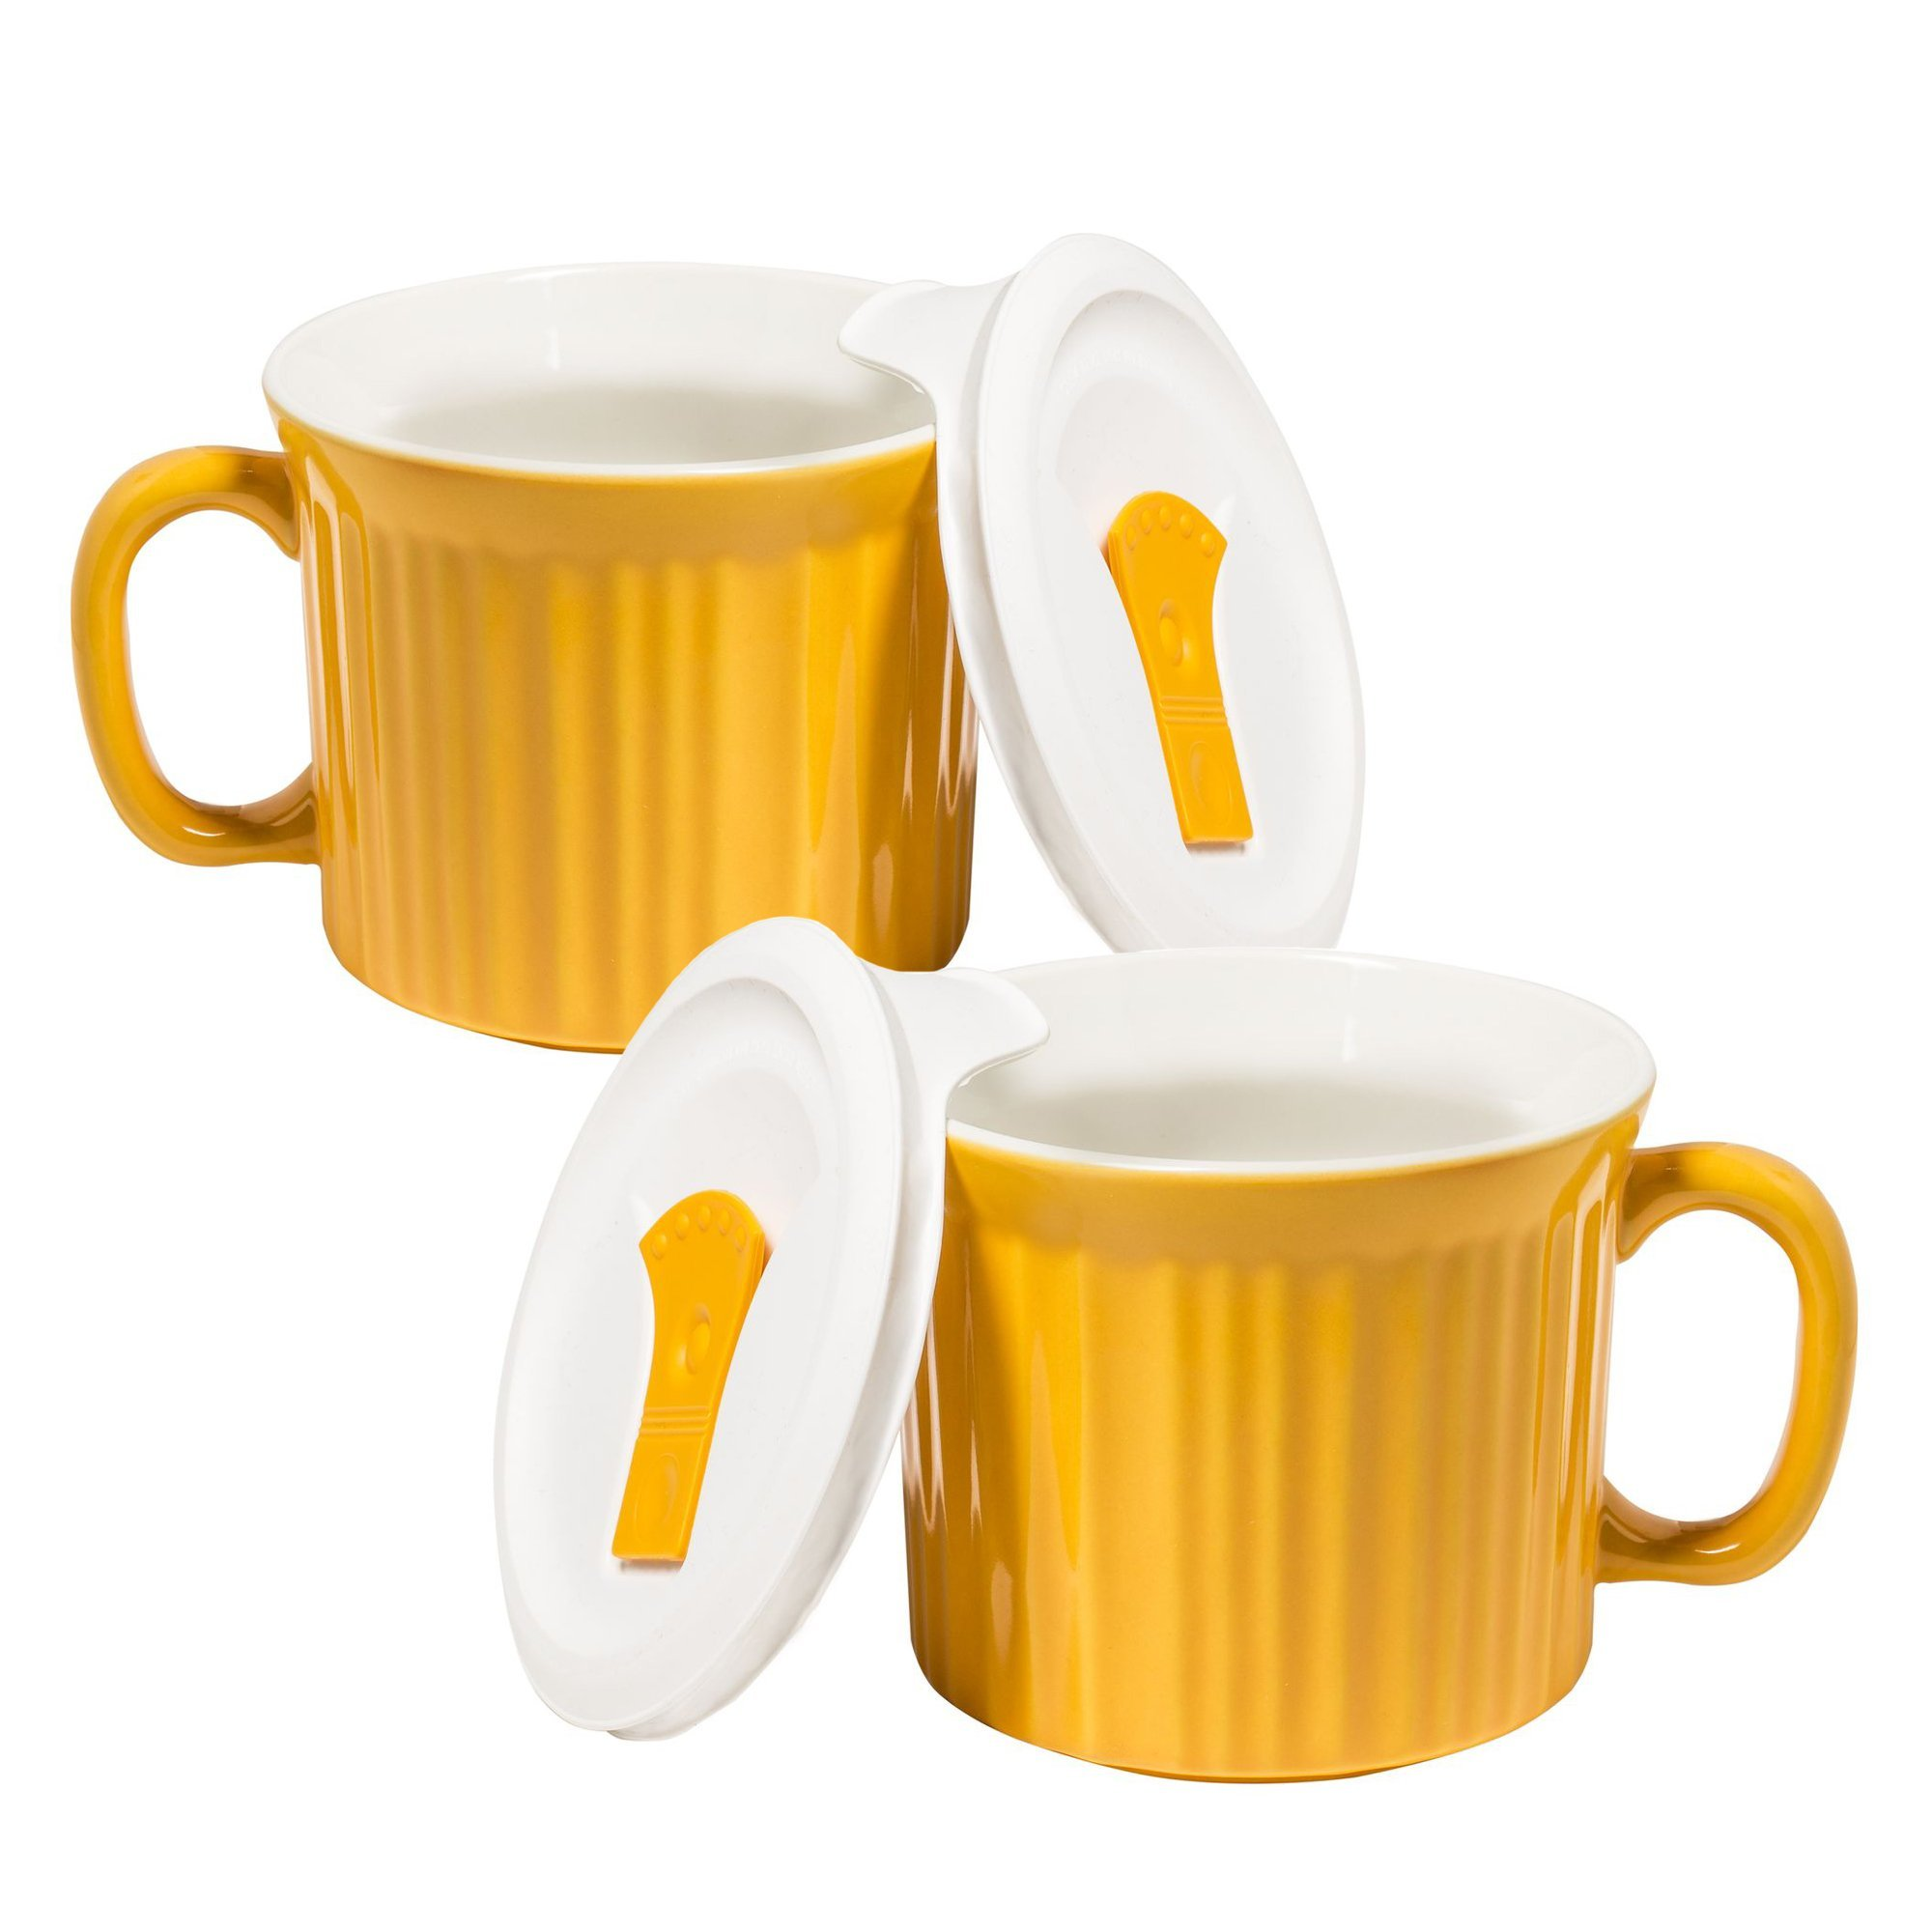 Corningware 20-Ounce Oven Safe Meal Mug with Vented Lid, Sunflower, Pack of 2